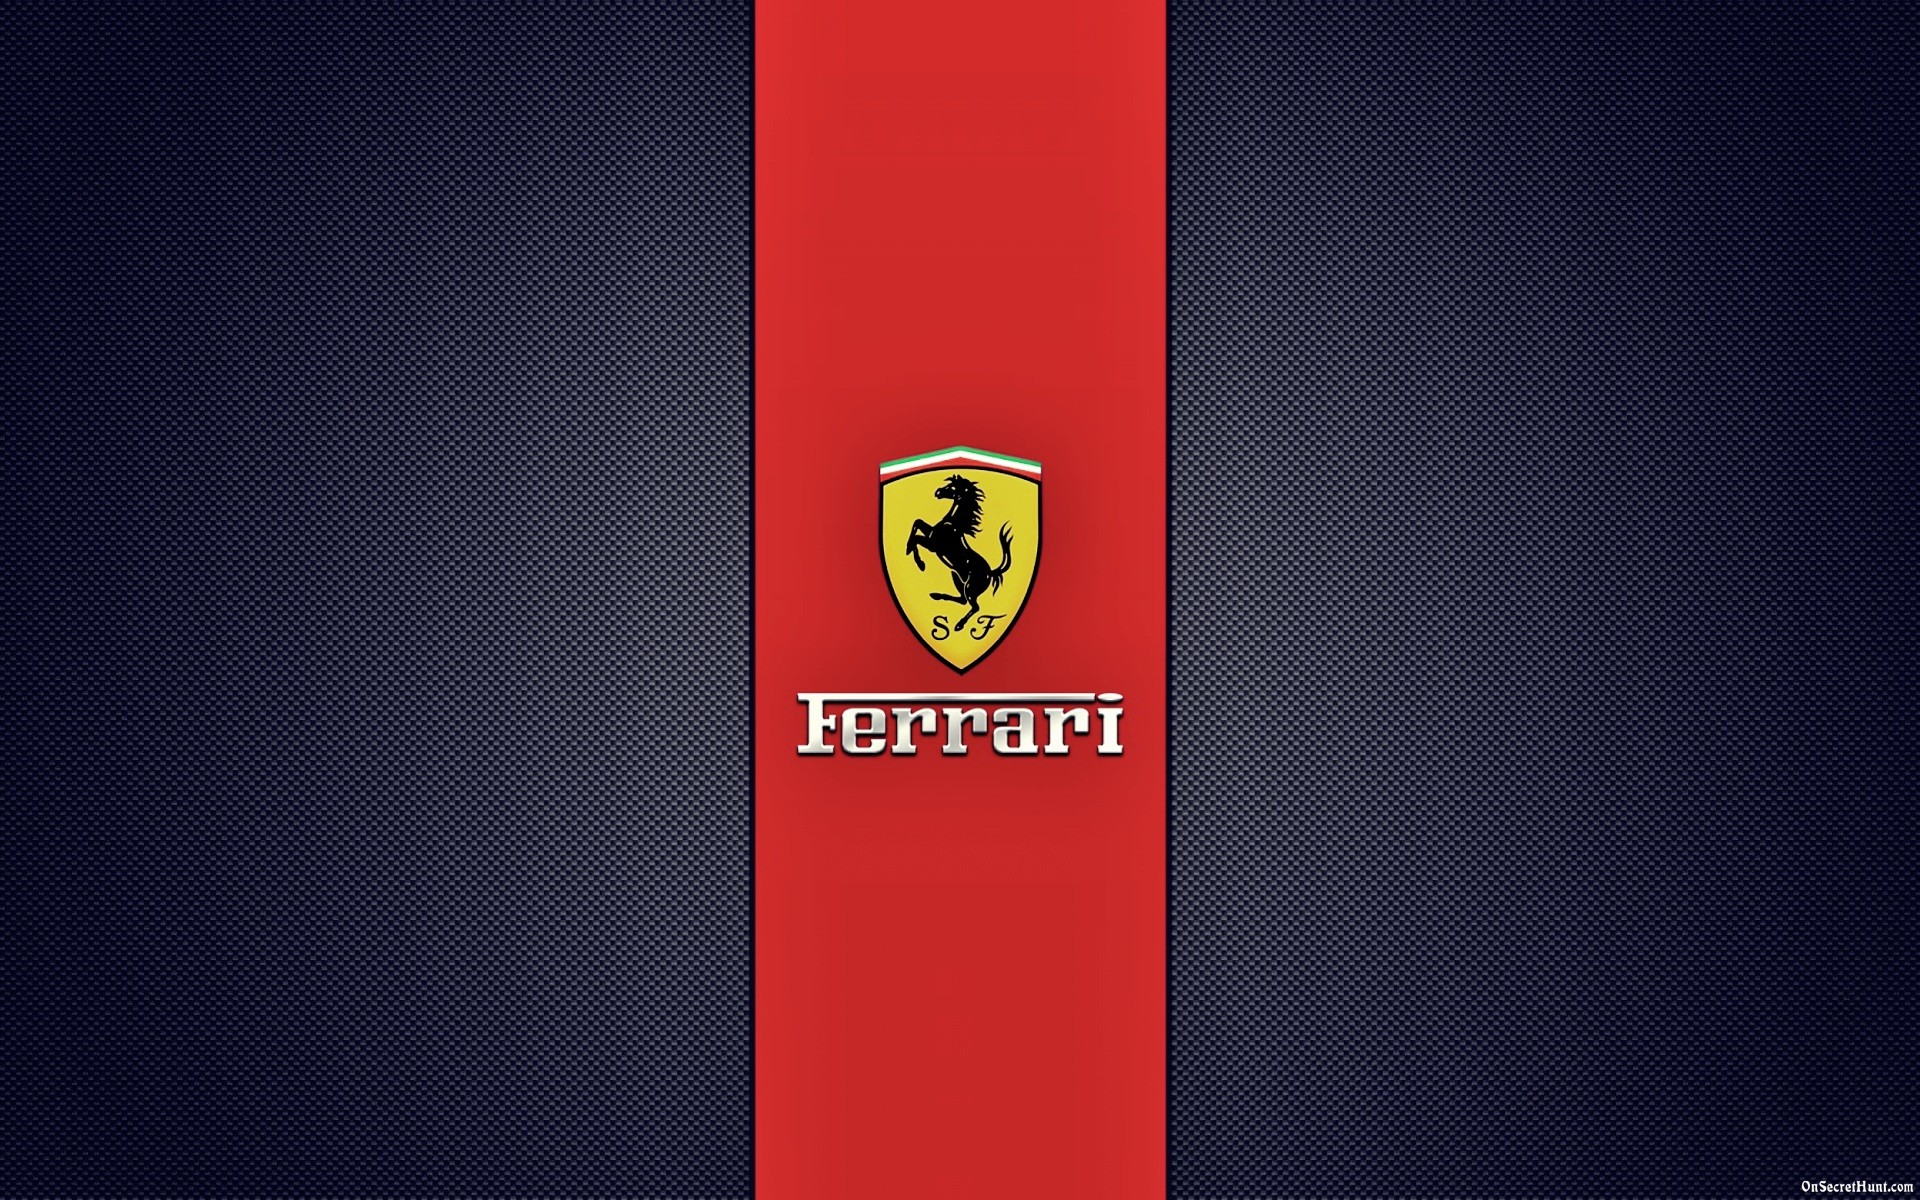 ferrari logo wallpaper 979 | Hd Wallpaper, Blue Wallpaper, Abstract  Wallpaper, Desktop Wallpaper, Pc Wallpaper, | Pinterest | Ferrari logo,  Ferrari and …